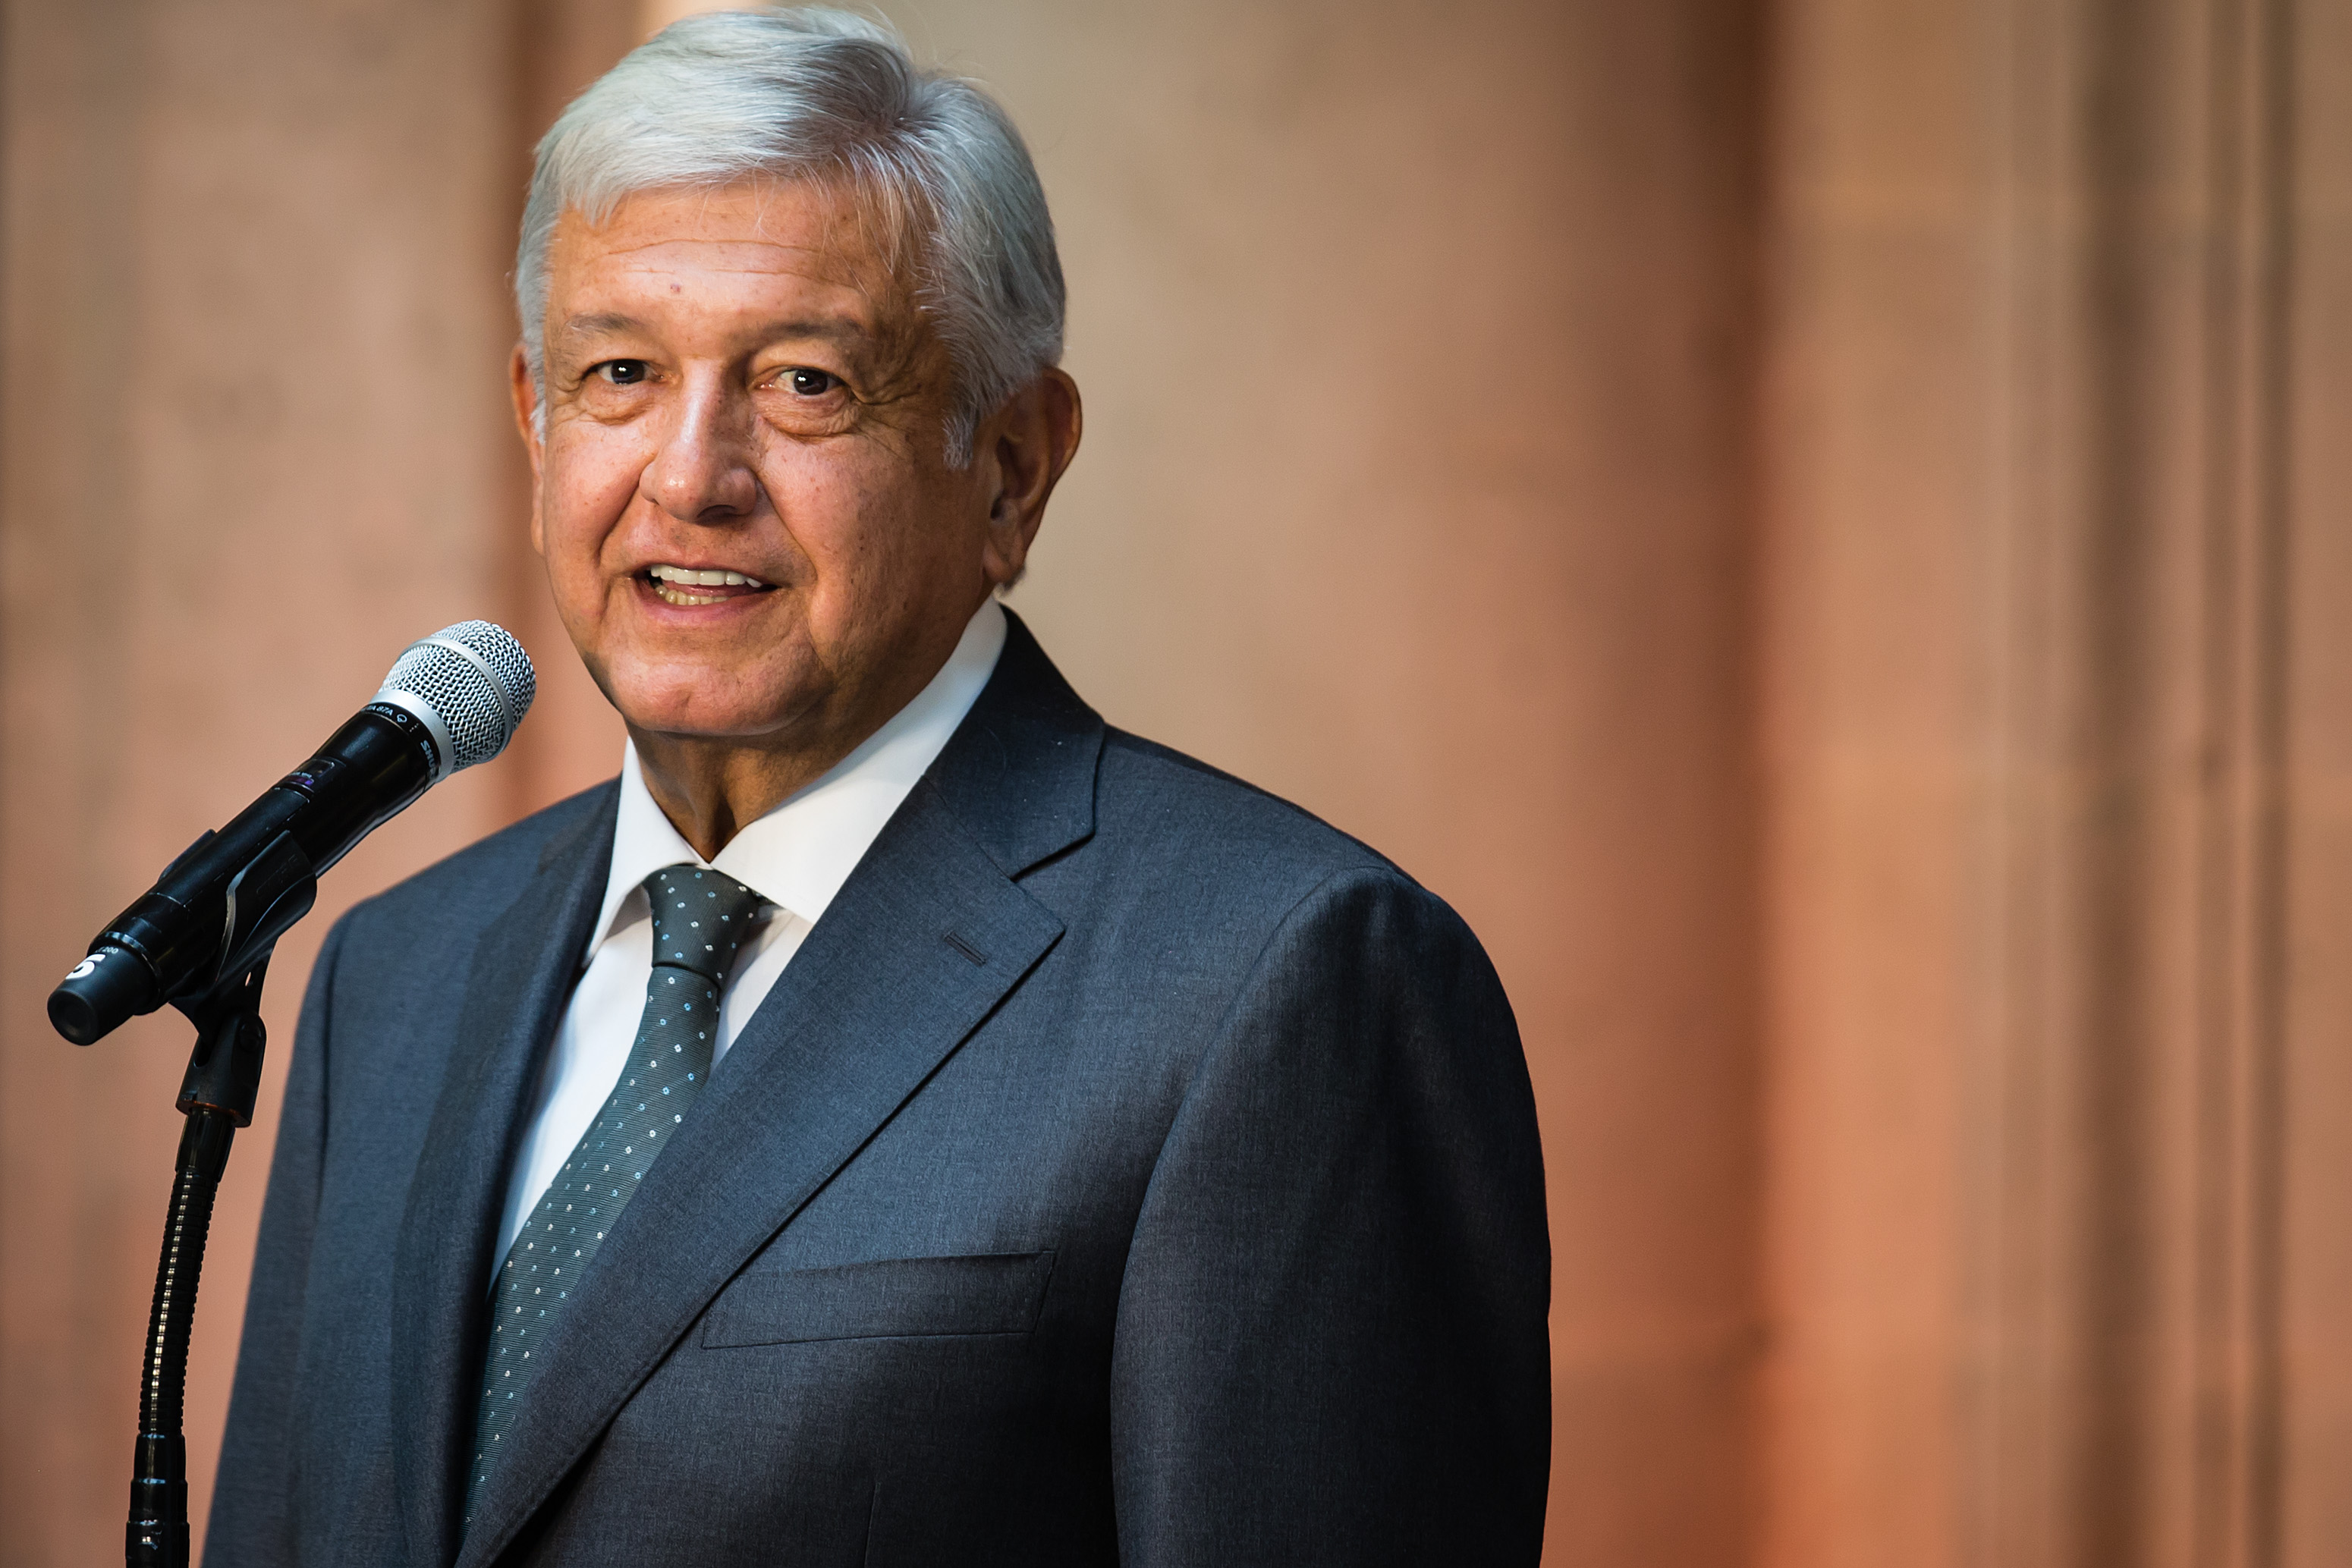 President of Mexico, Andres Manuel Lopez Obrador, in Mexico City, Mexico. (Photo by Manuel Velasquez/Getty Images)